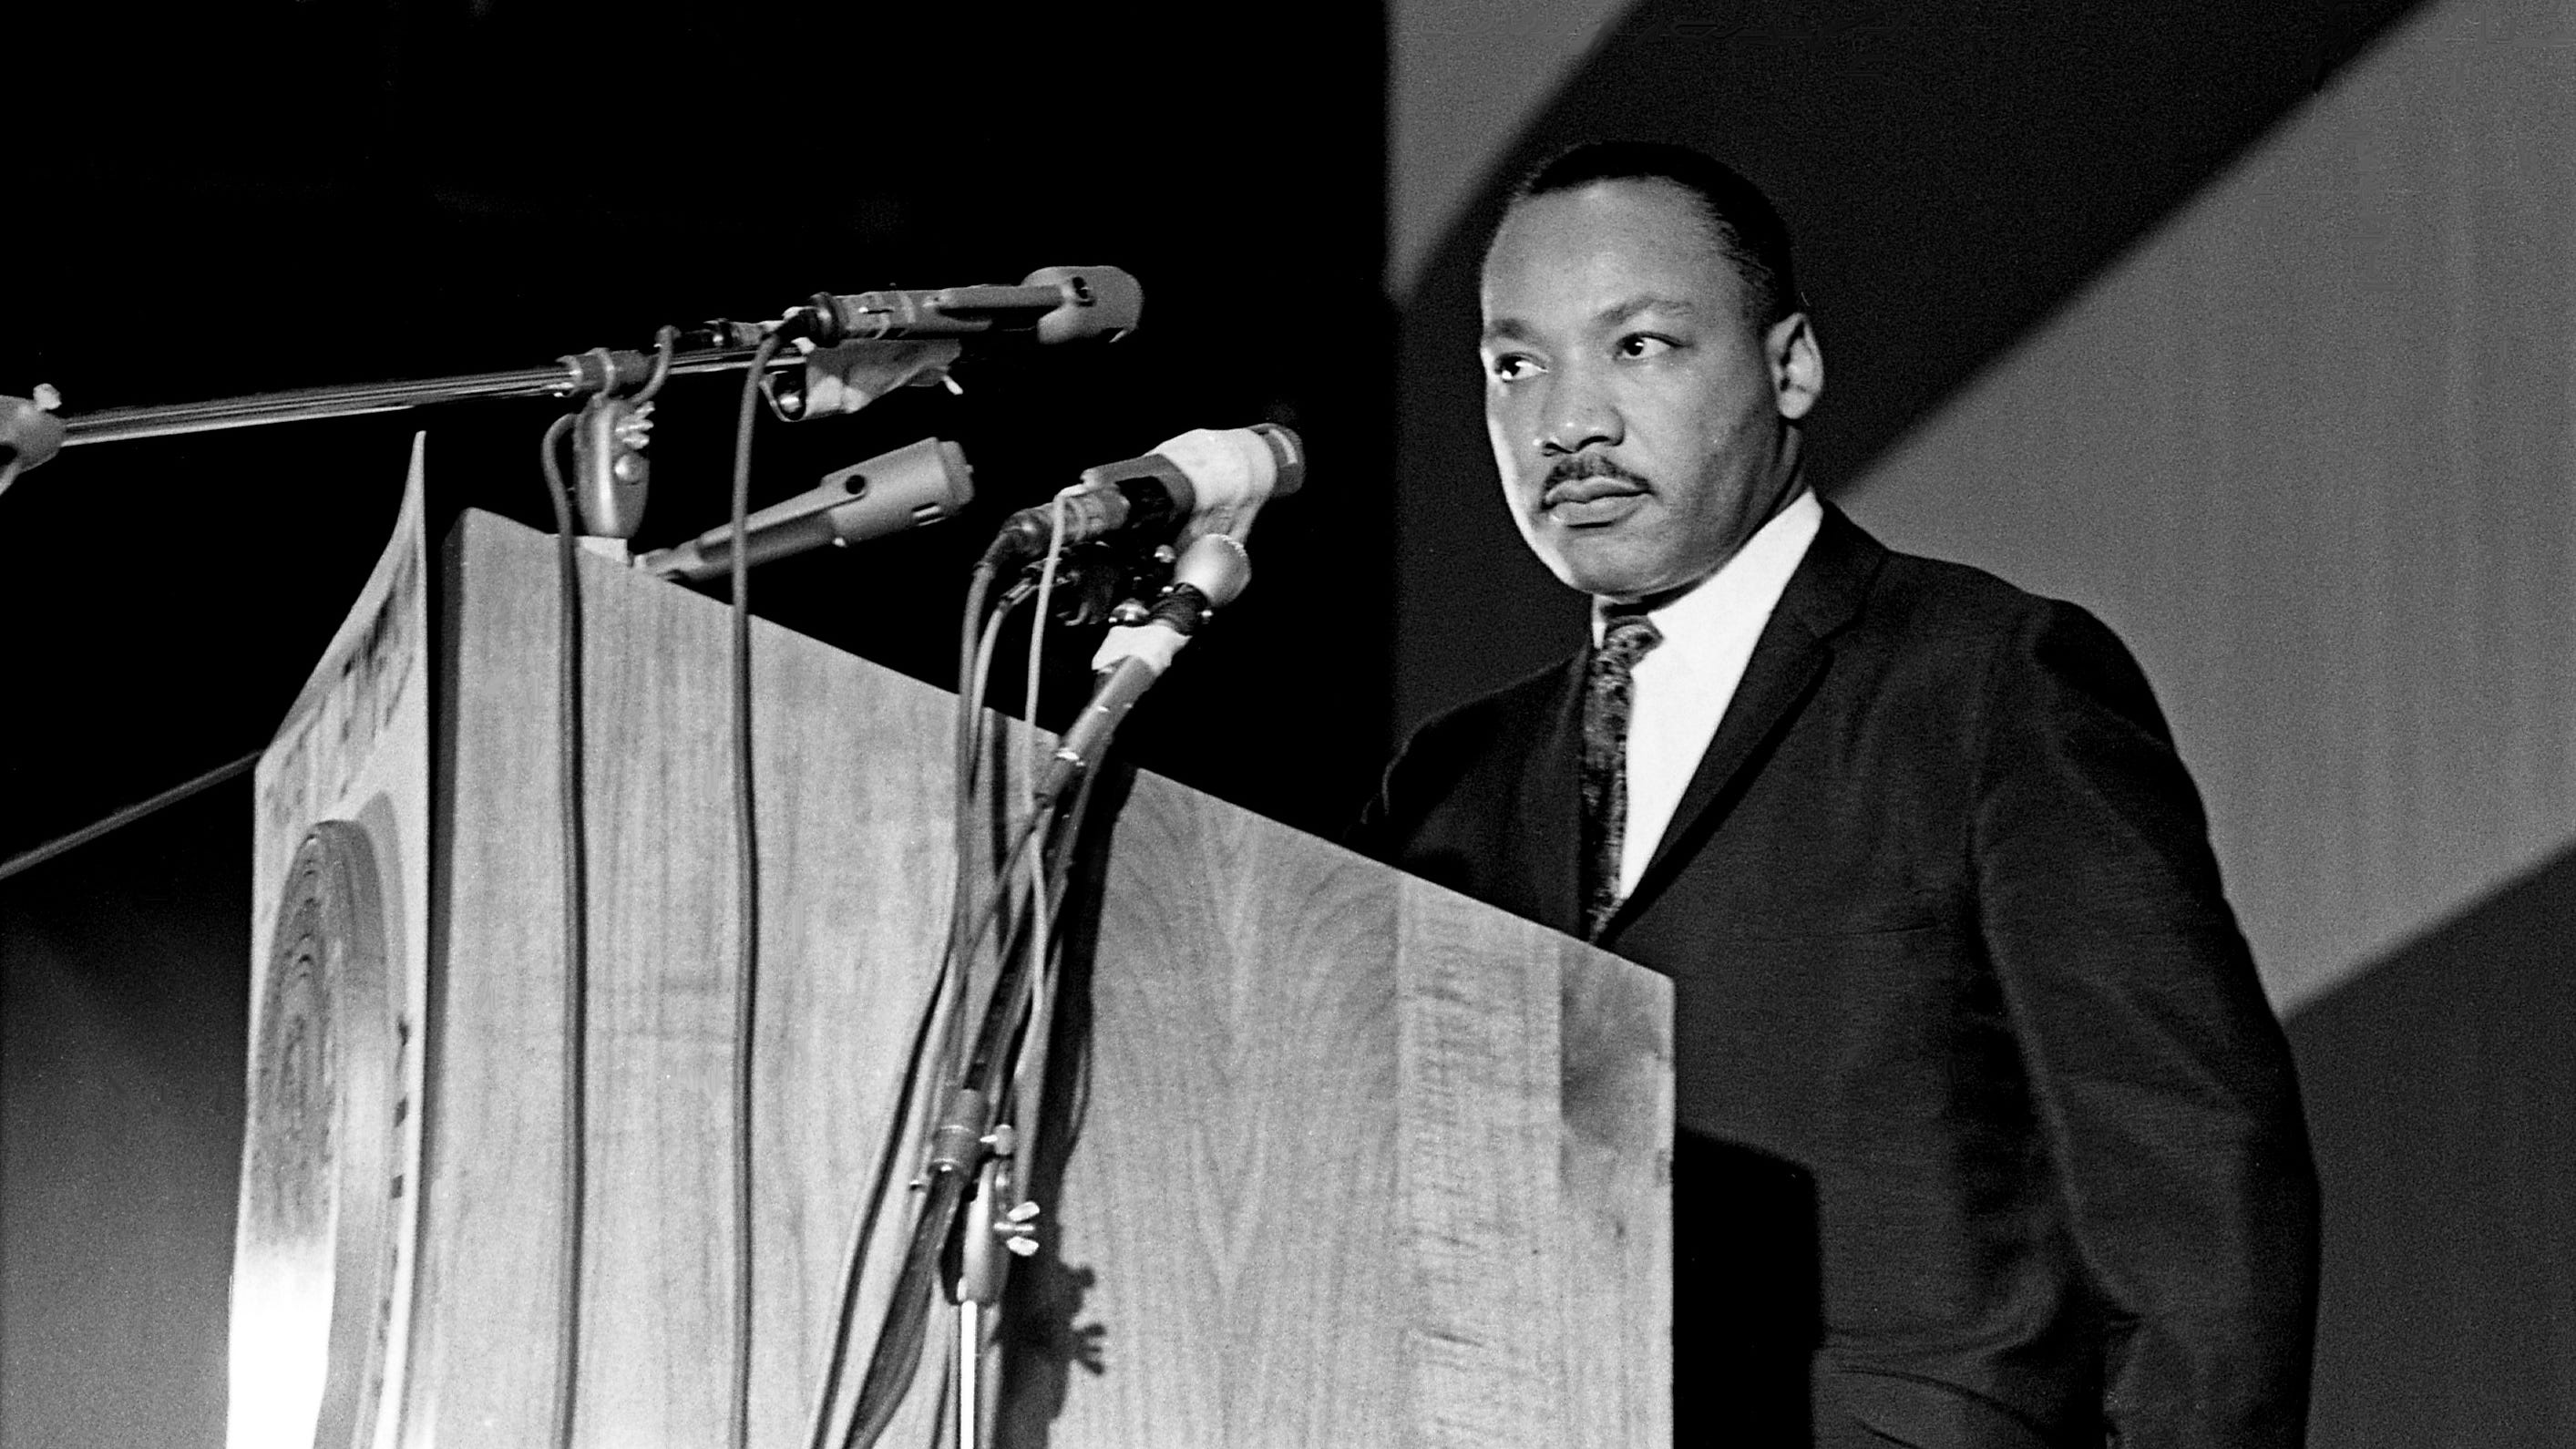 Follow Martin Luther King Jr S Lead To End Hunger And Poverty